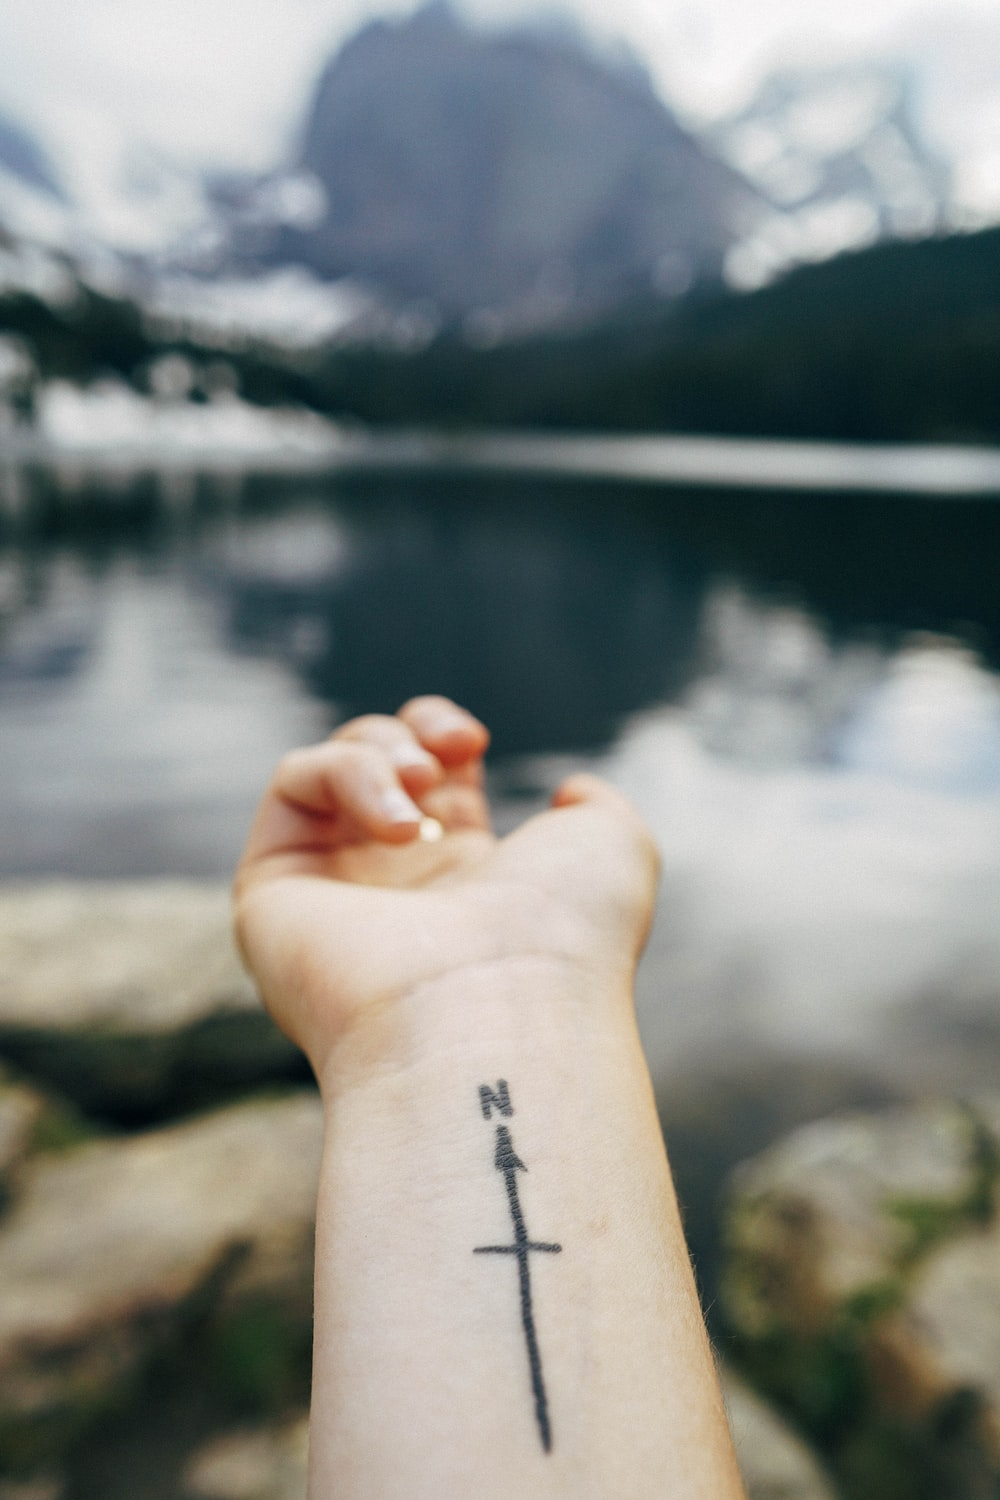 person with wrist tattoo of North